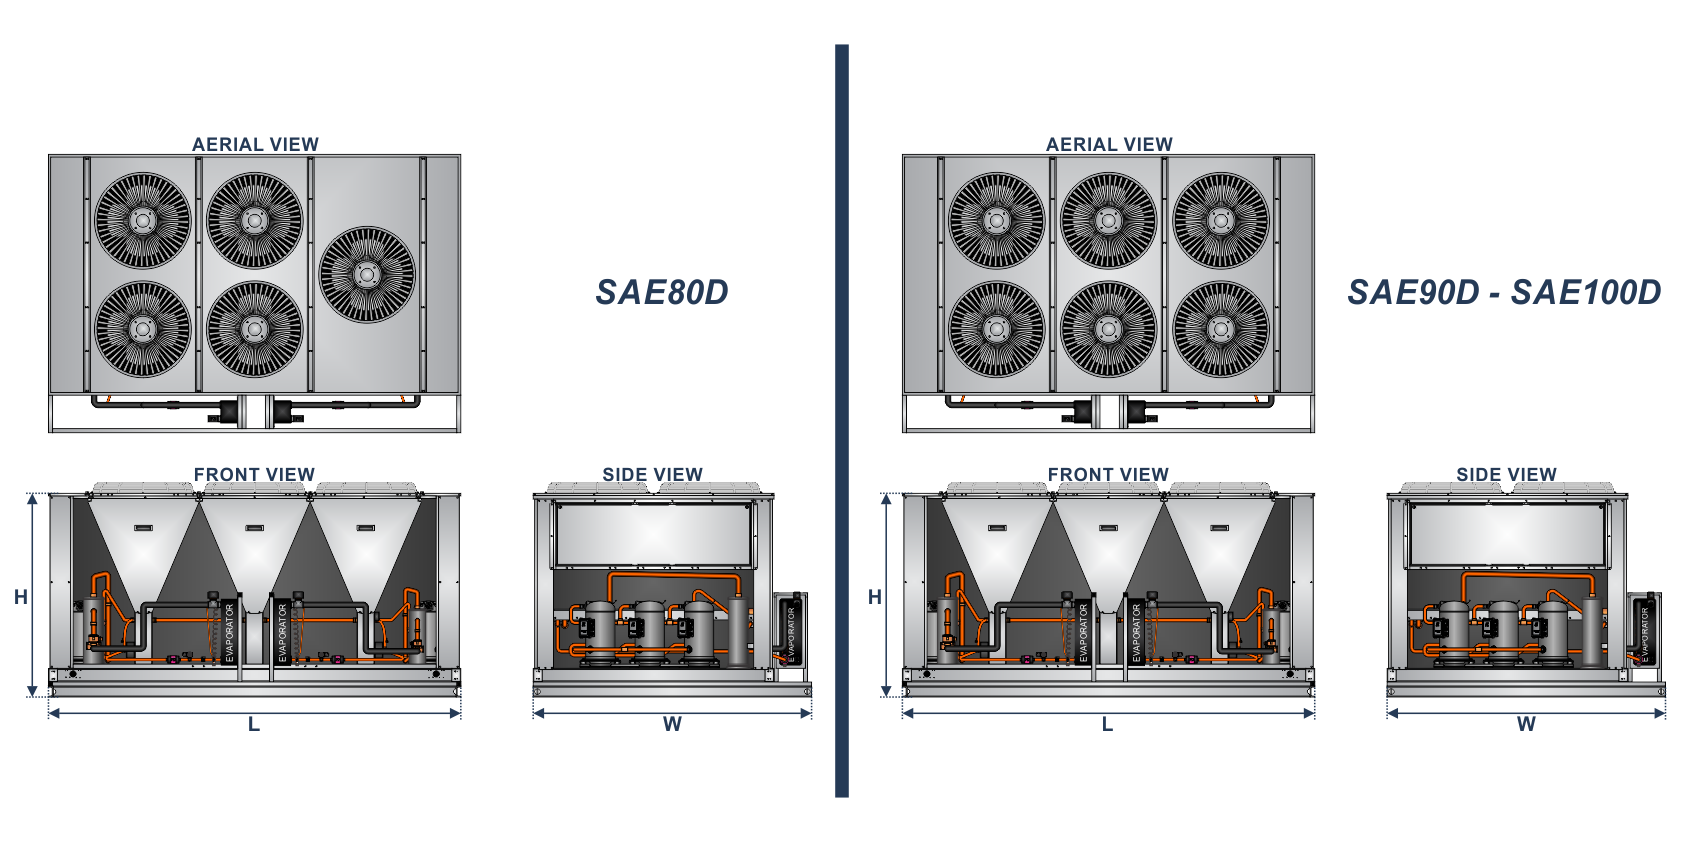 Air Cooled Modular Chillers - 80 Ton to 100 Ton